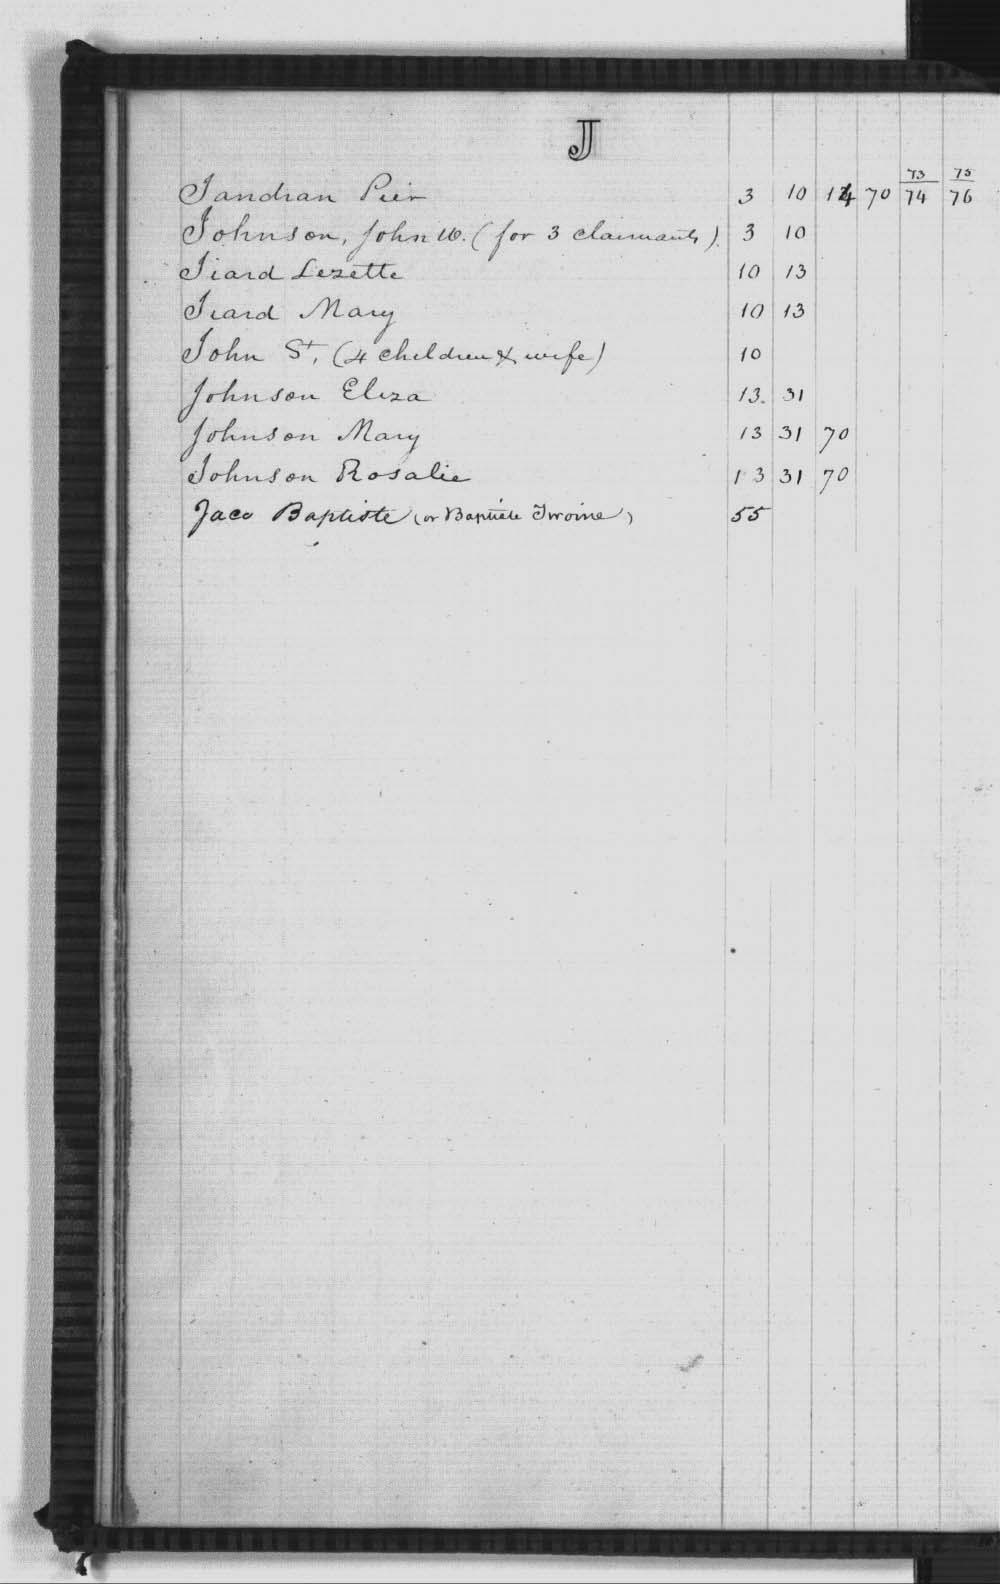 United States Office of Indian Affairs, Central Superintendency, St. Louis, Missouri. Volume 32, Claims under 1824 Sac and Fox Treaty - Index J